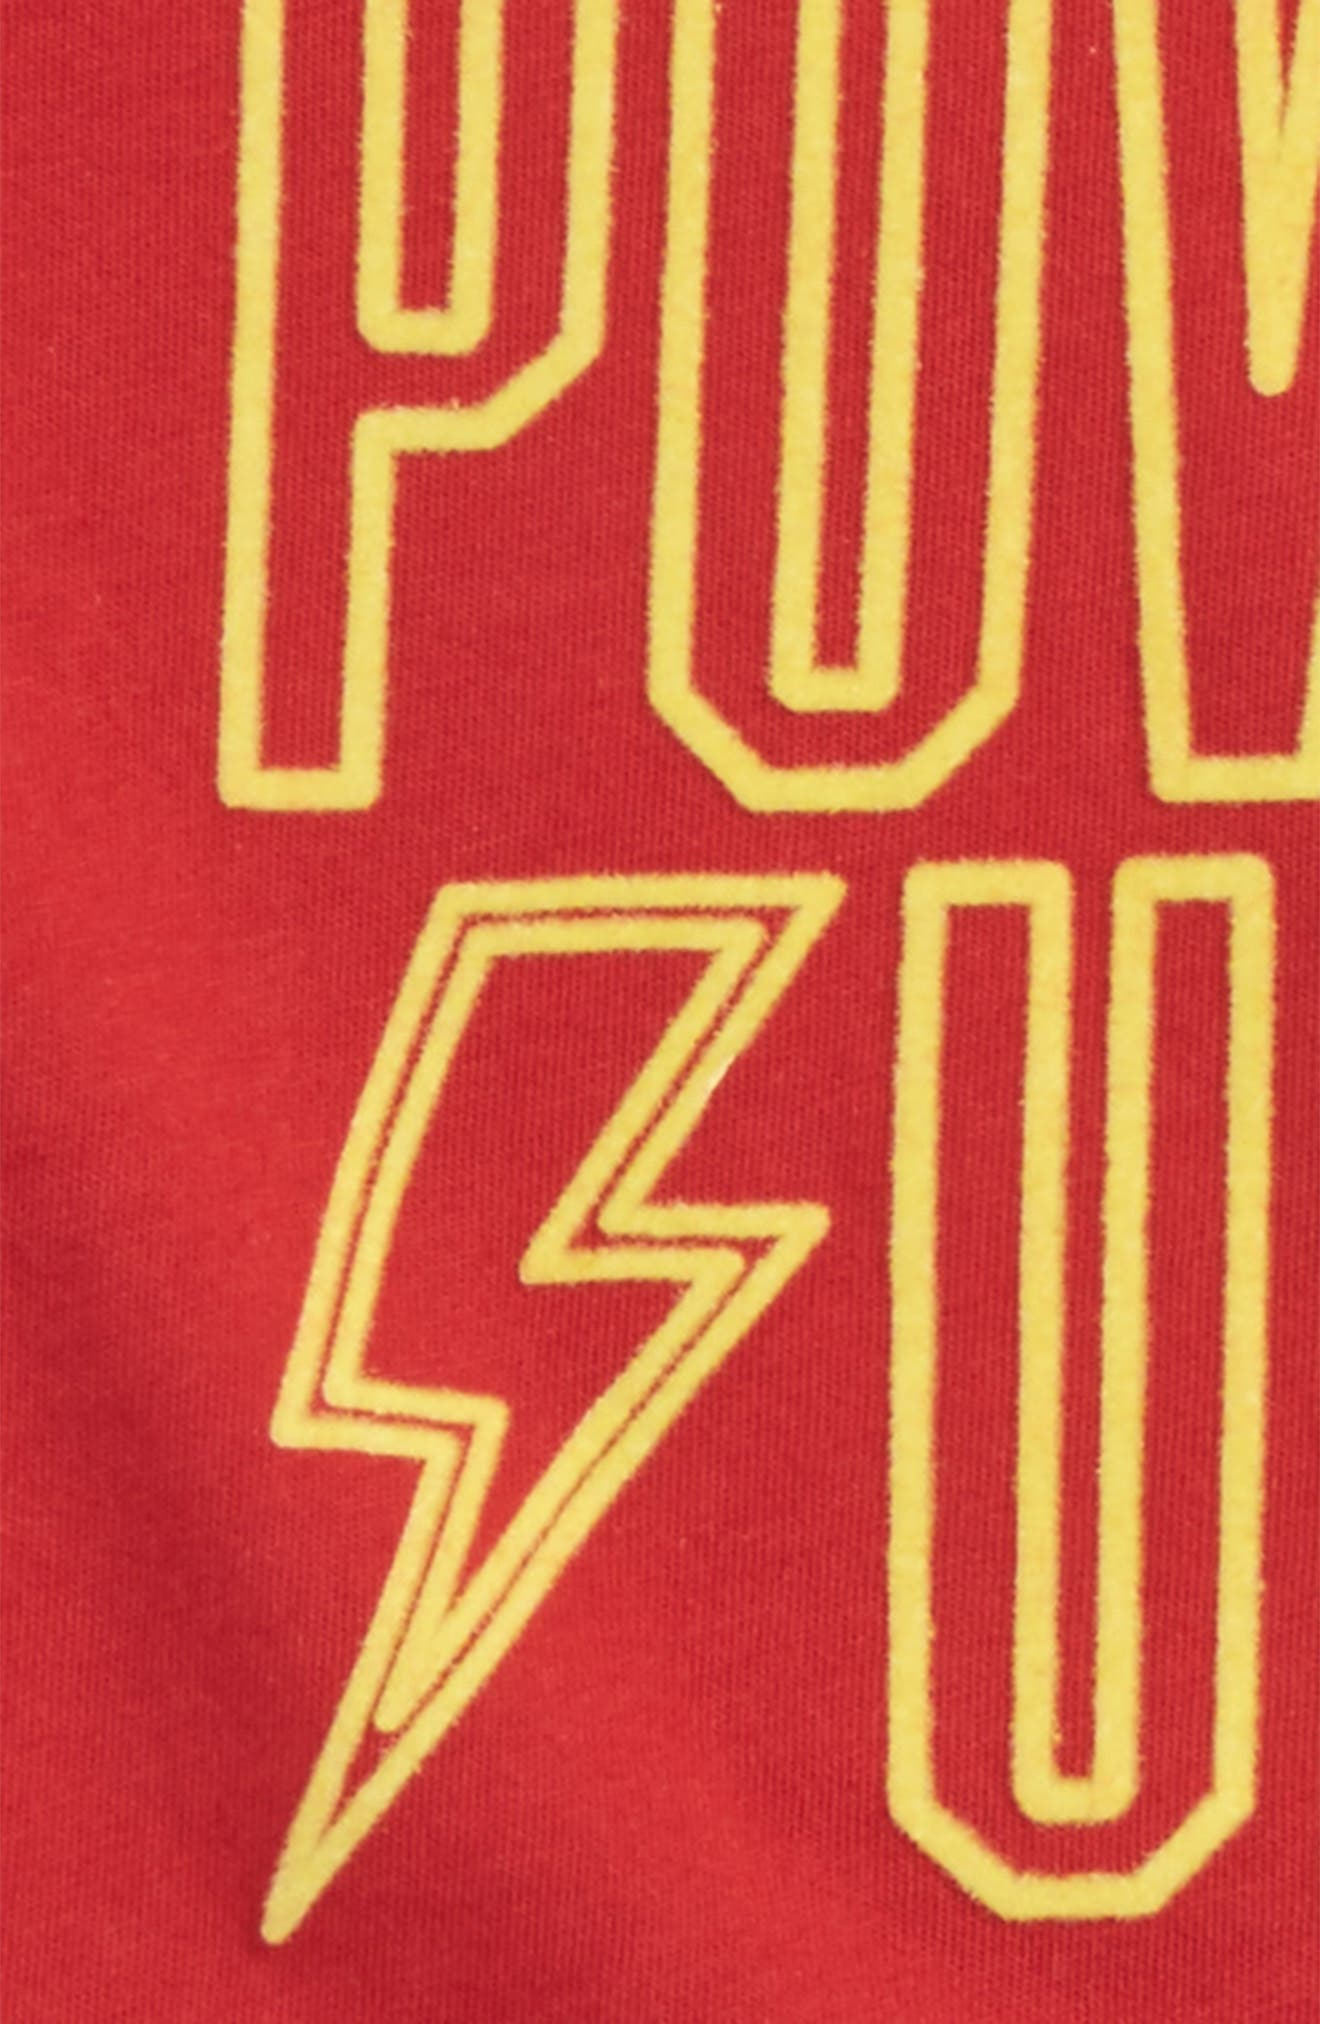 Power Up T-Shirt,                             Alternate thumbnail 2, color,                             Red